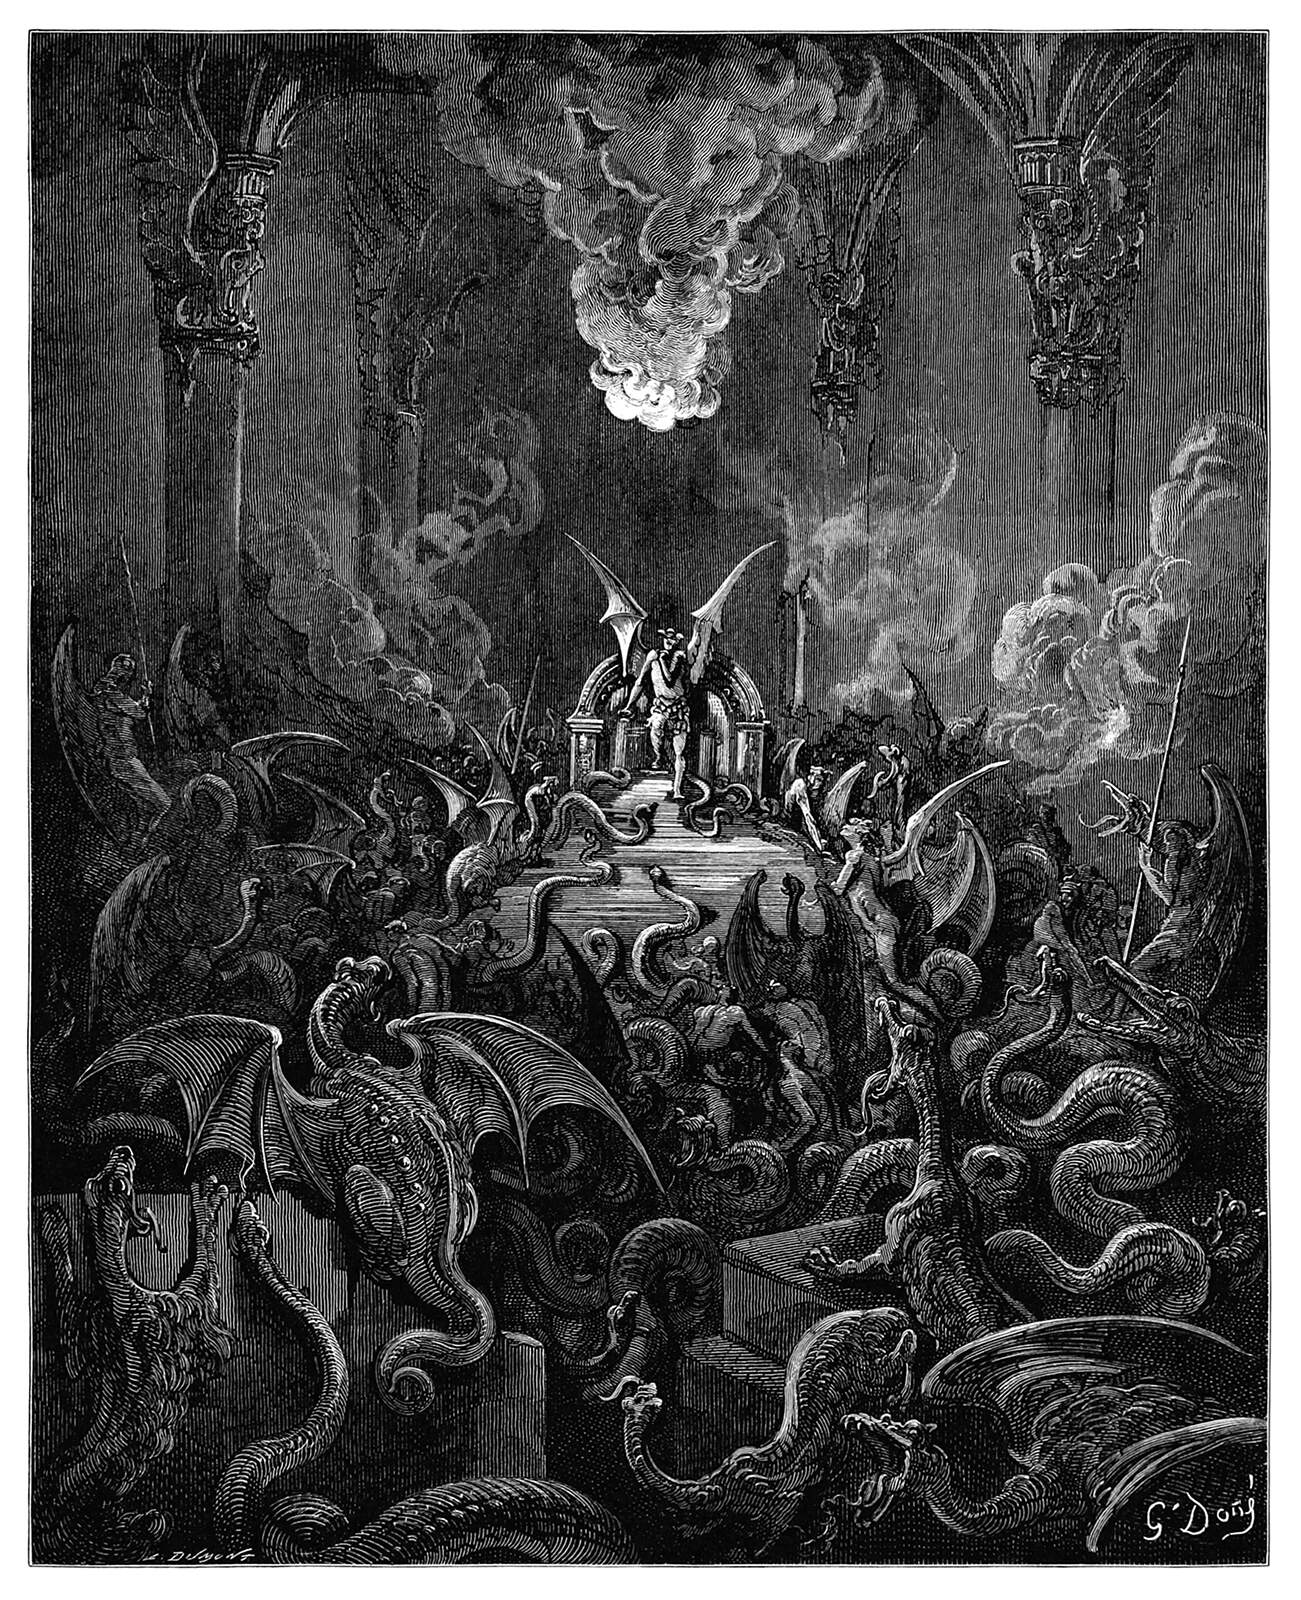 Demons gather in hell